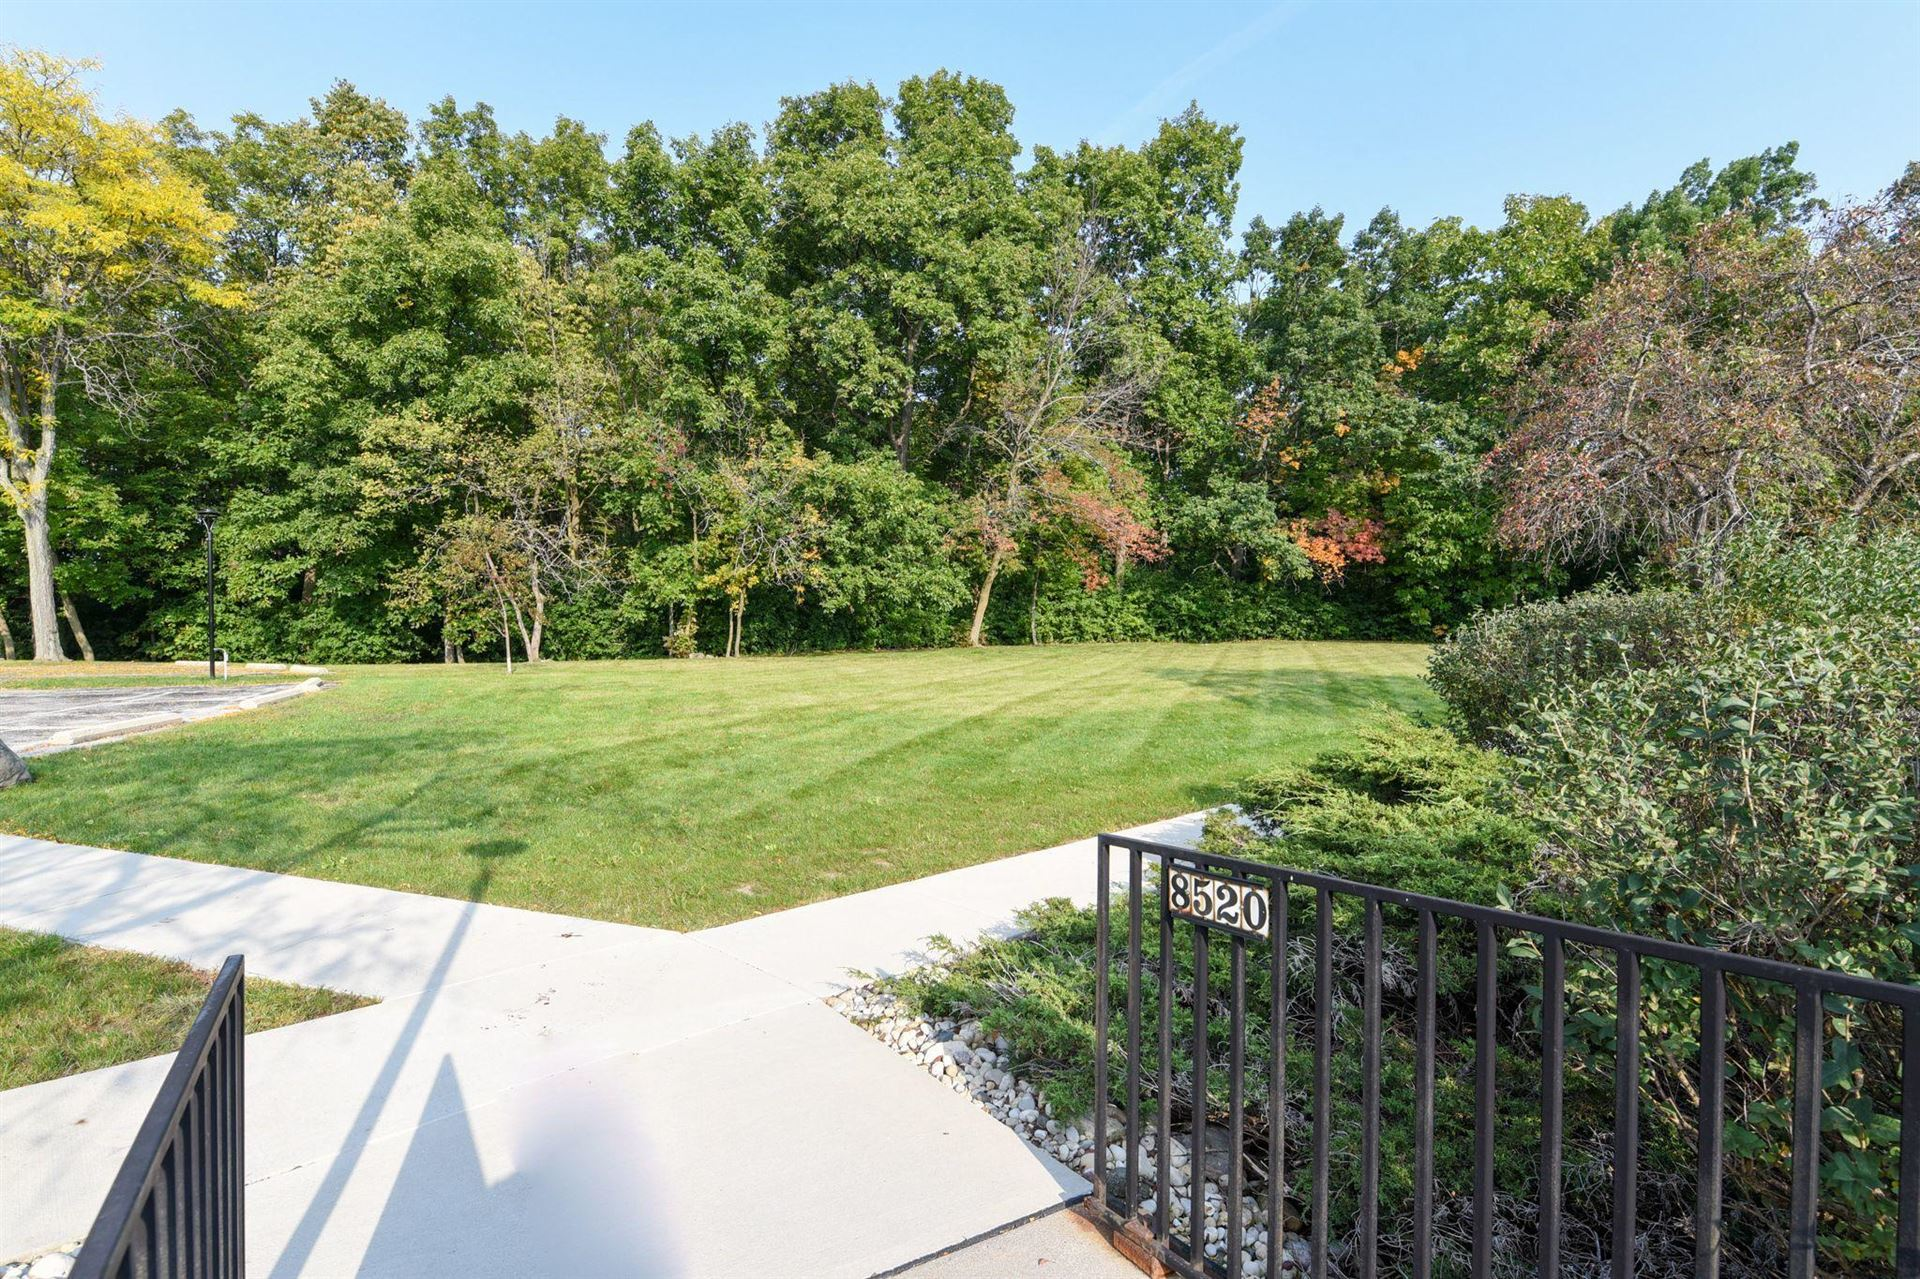 8520 W Waterford Ave #6, Greenfield, WI 53228 - #: 1712879